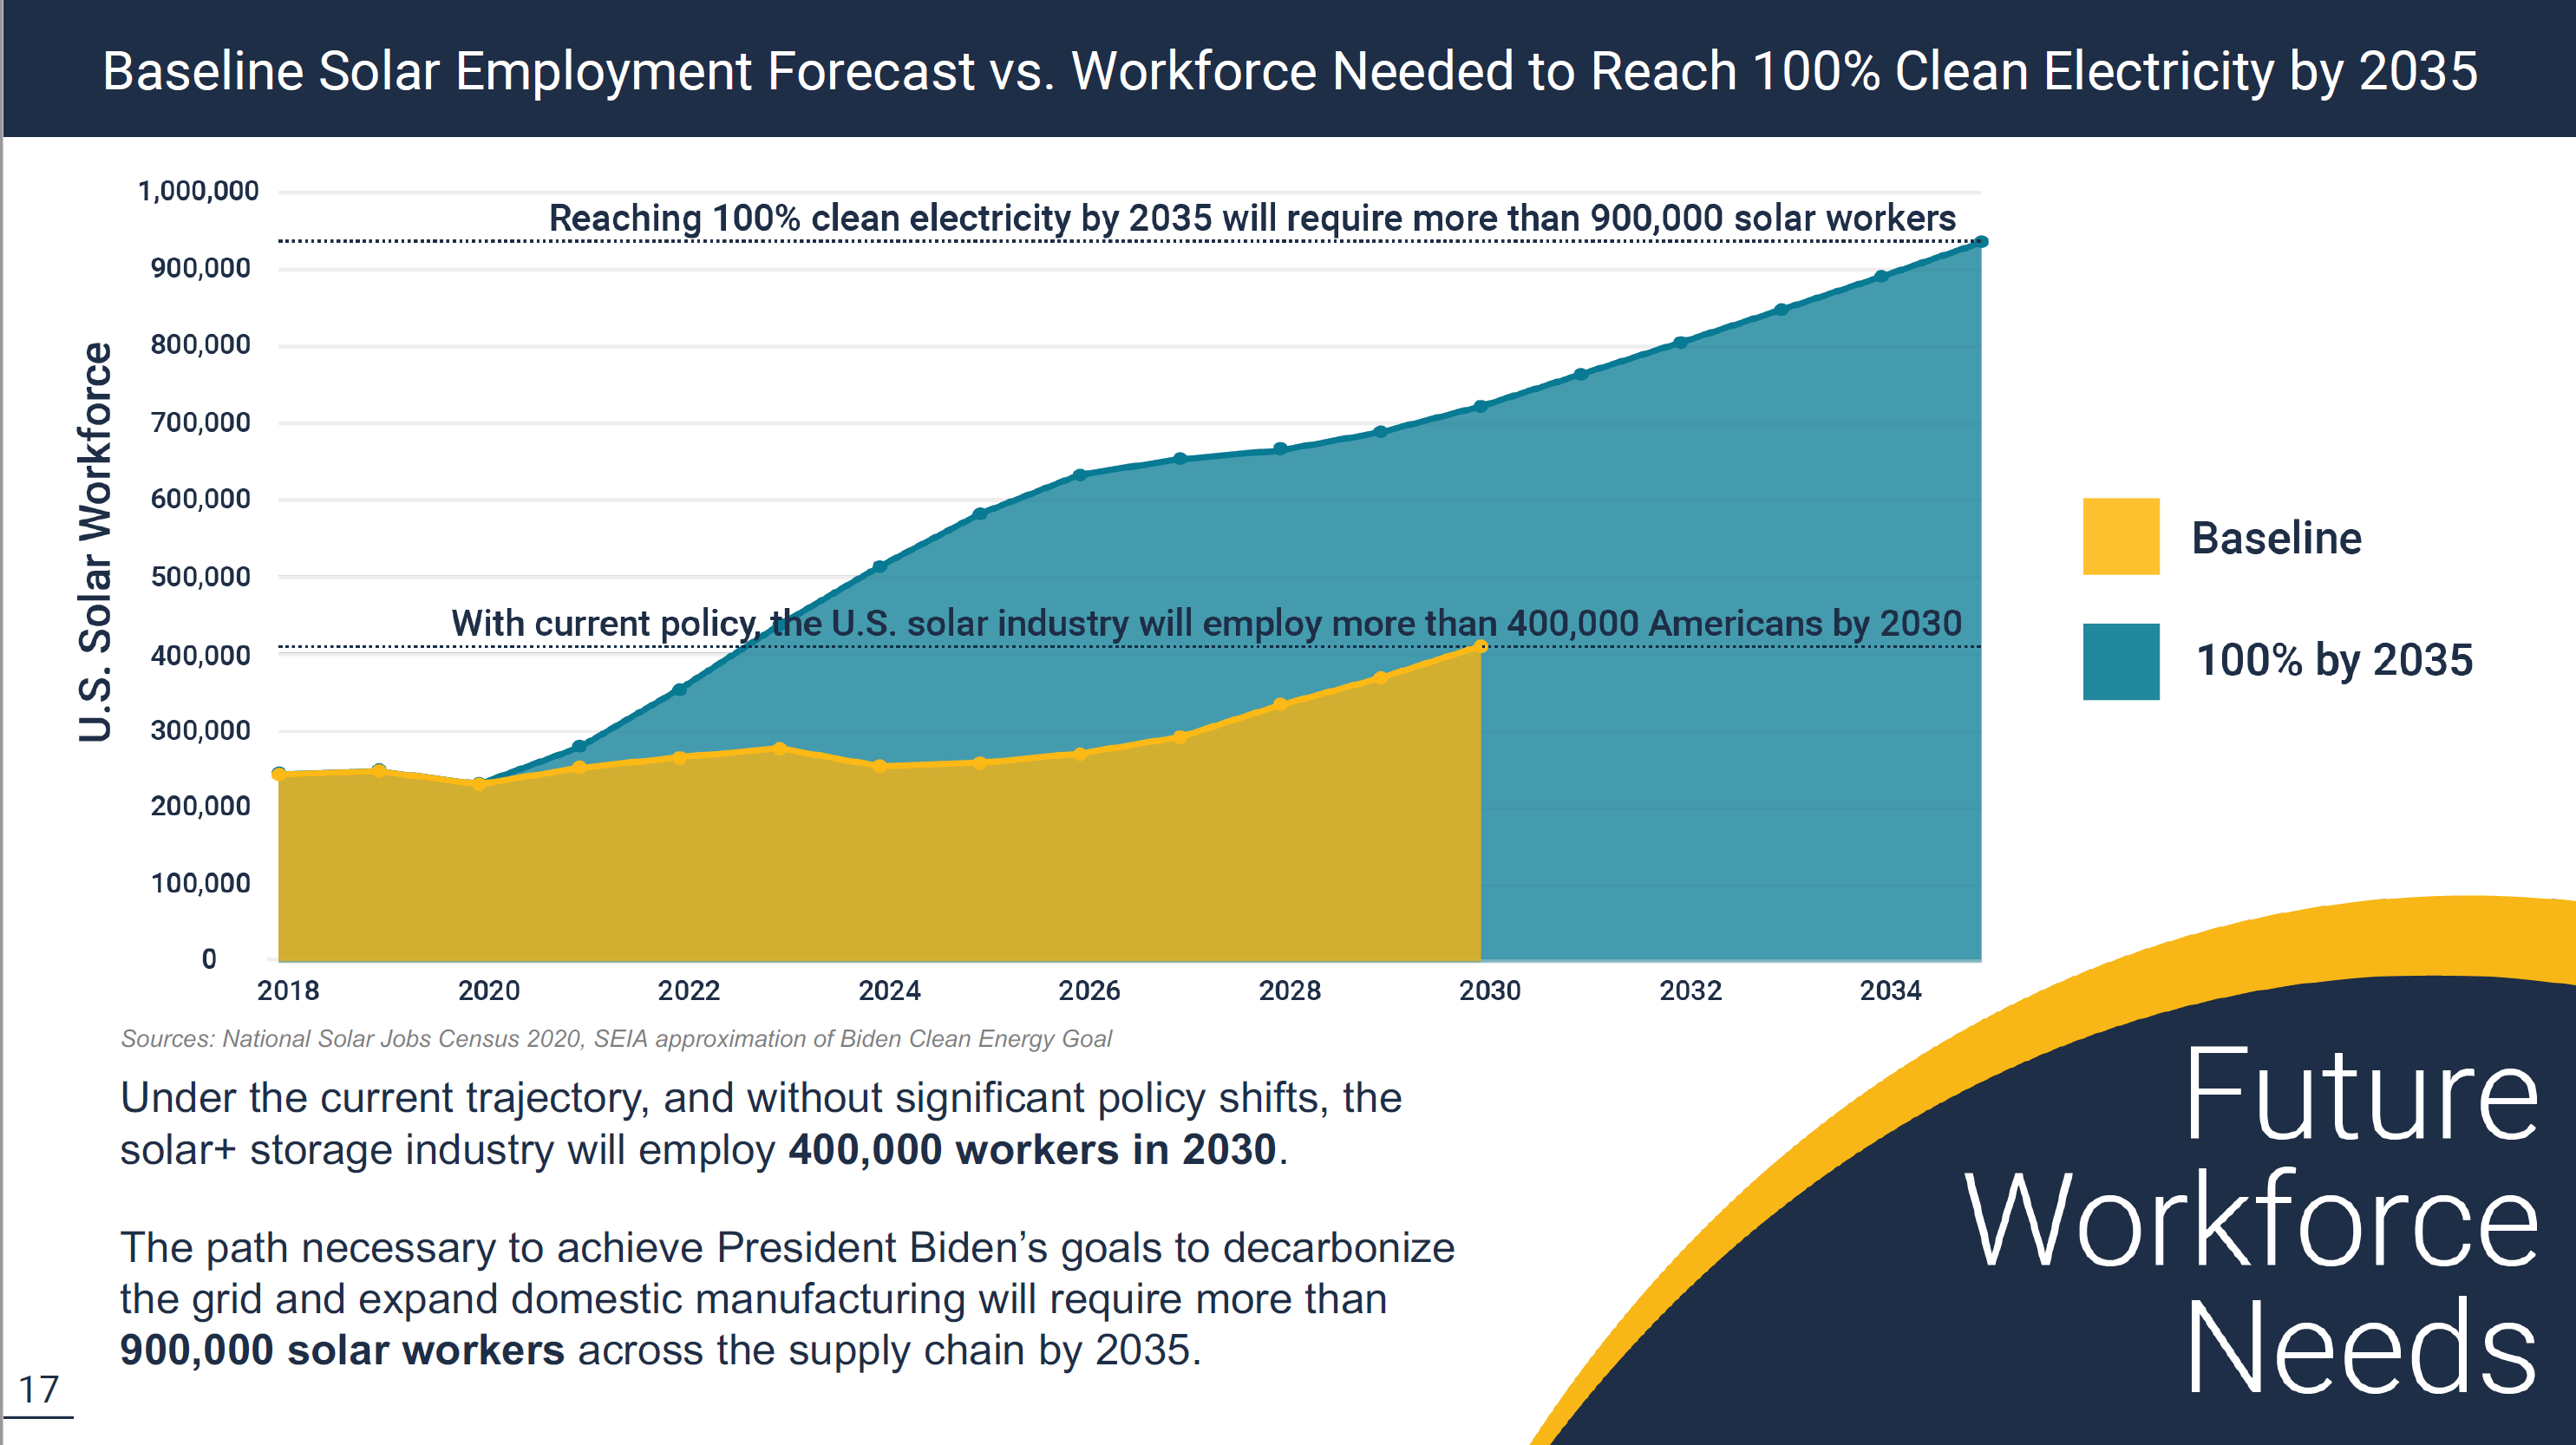 Building the Solar/PV Workforce